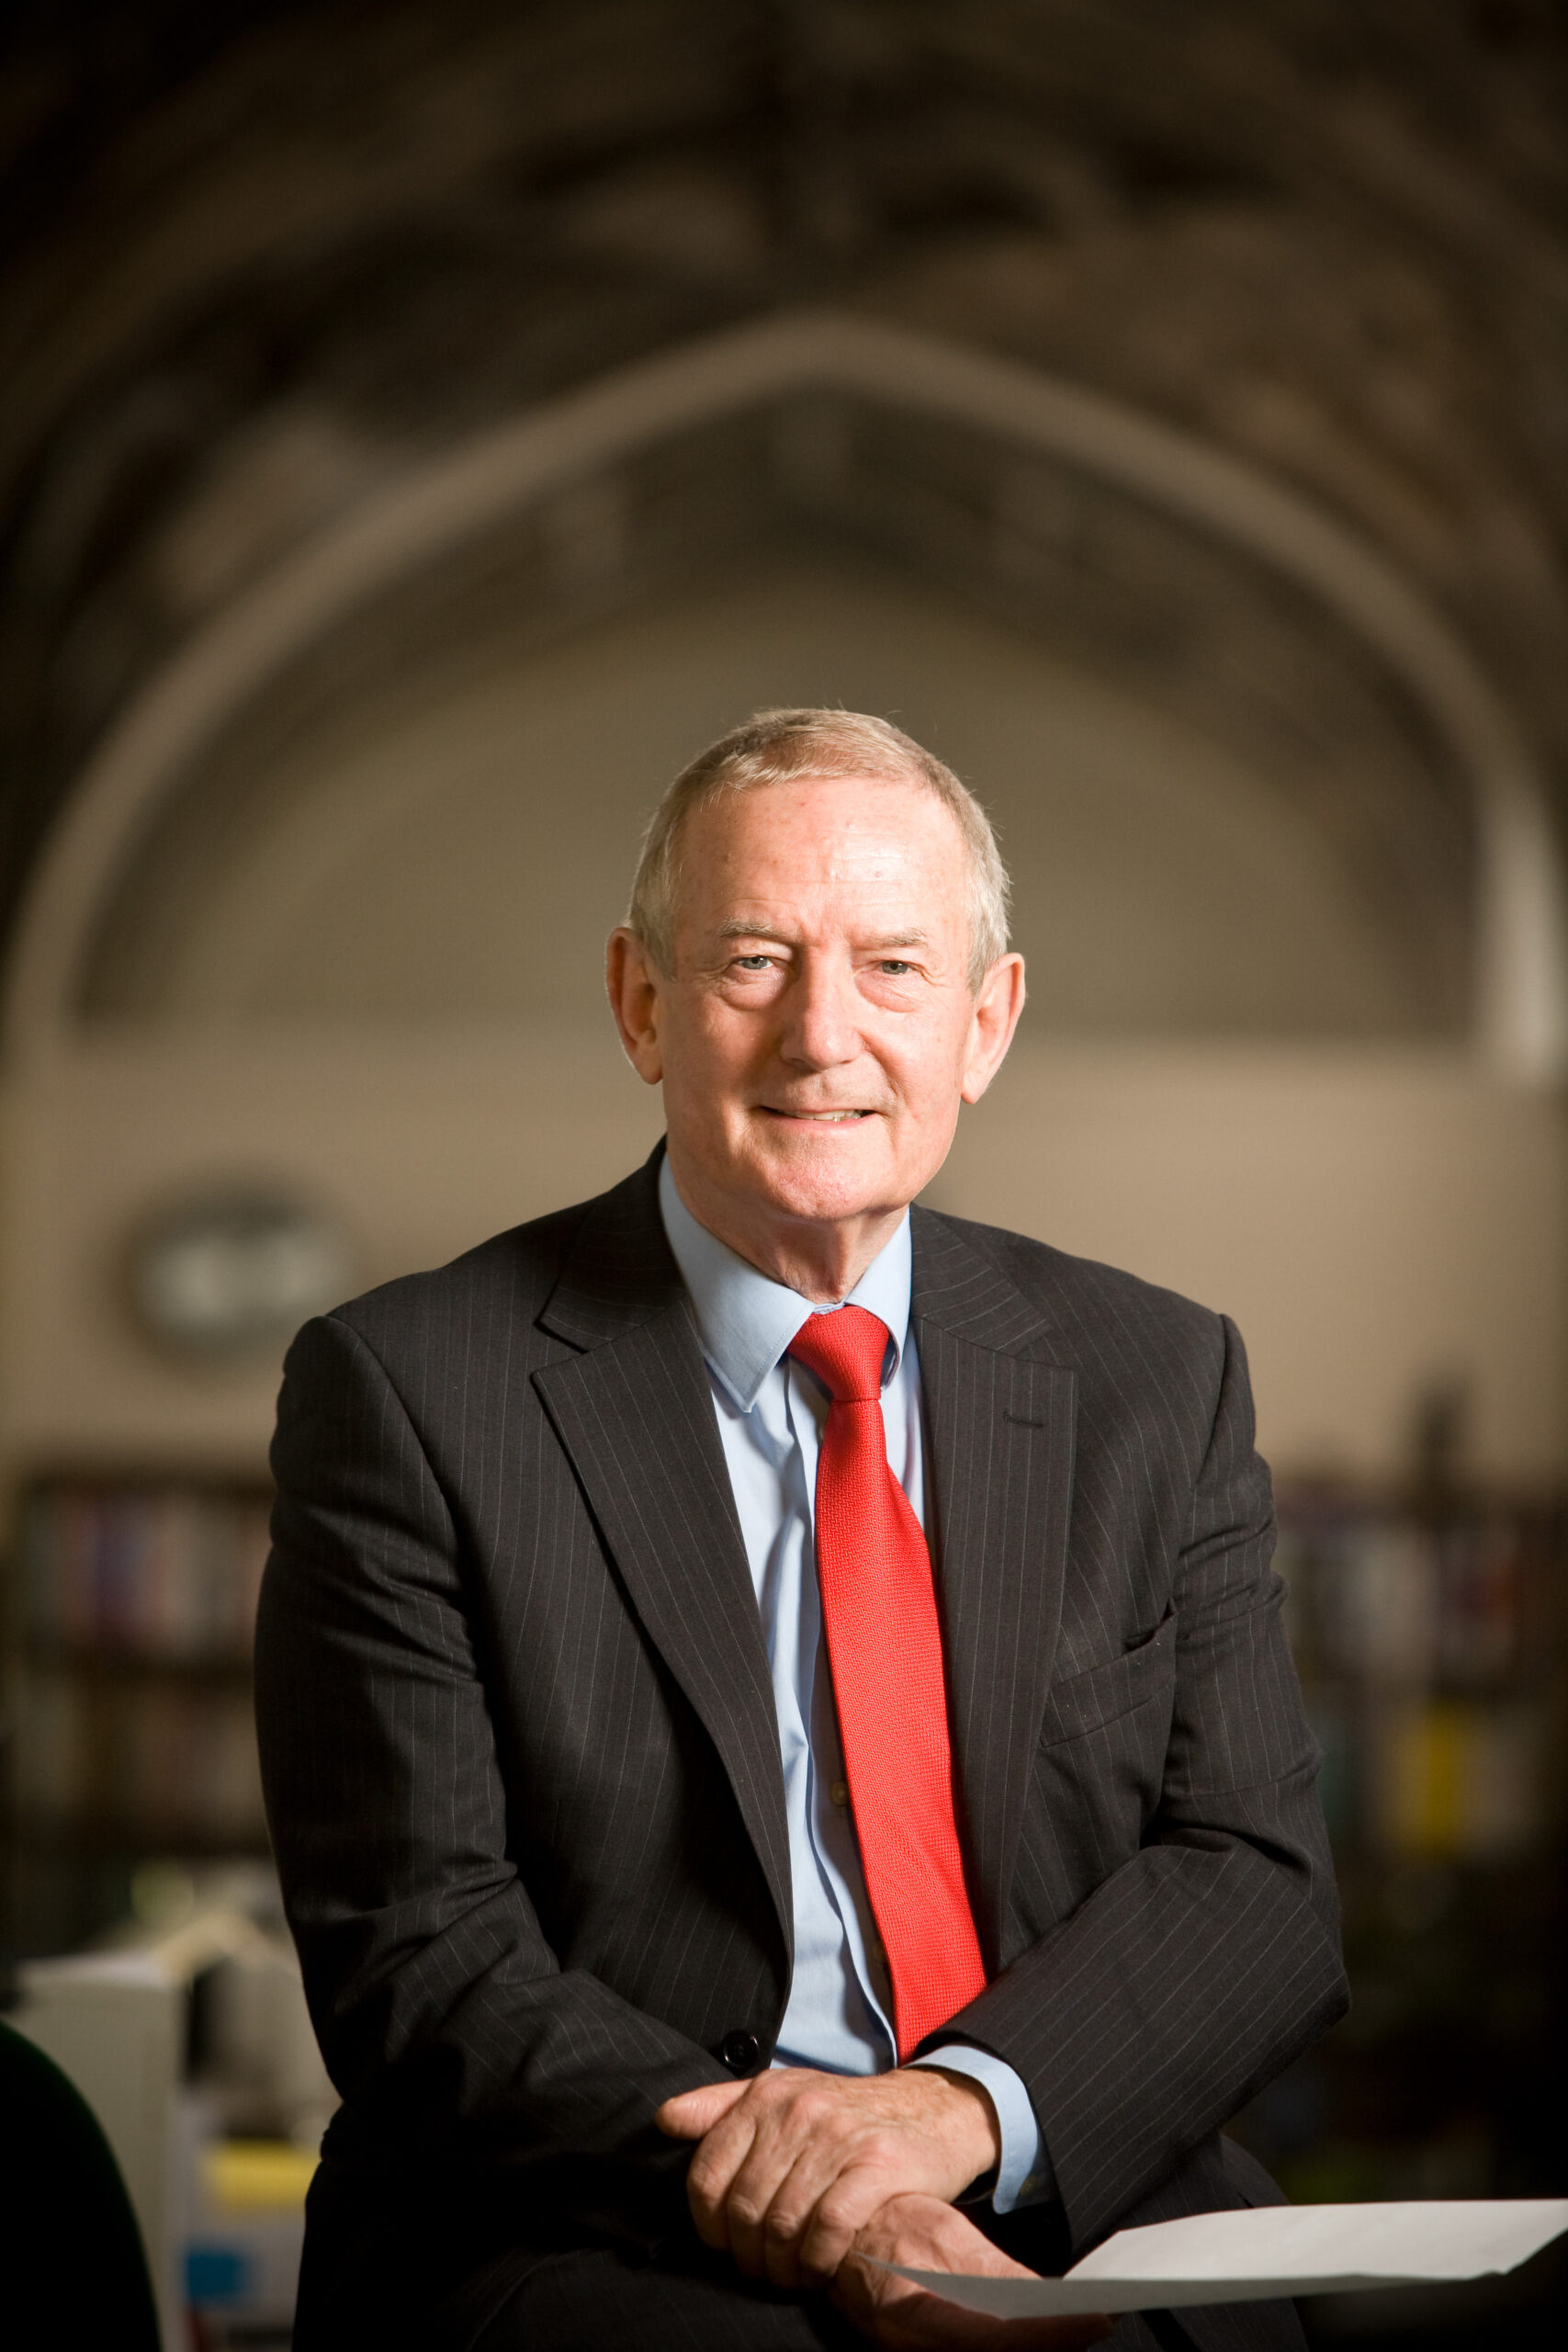 <strong>Barry Sheerman MP, Labour and Co-operative Member of Parliament for Huddersfield</strong>